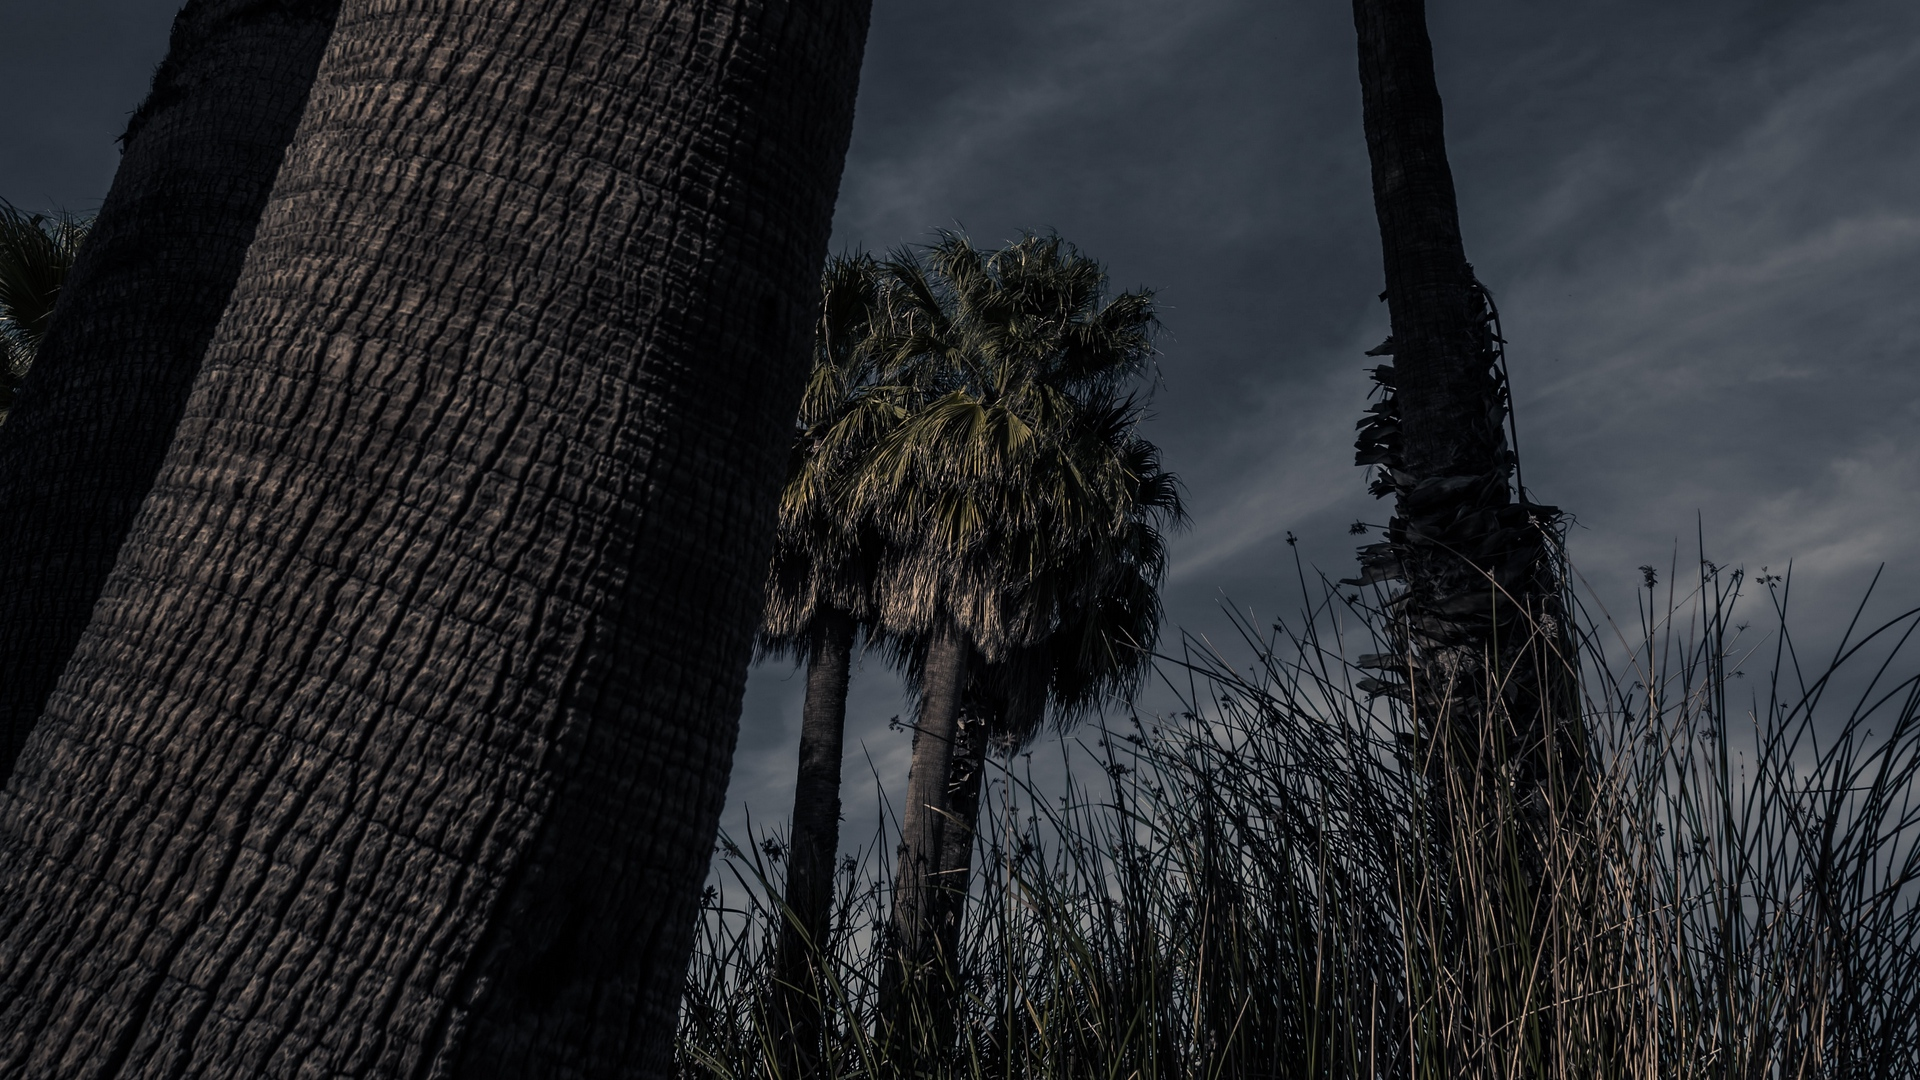 palm trees trees grass